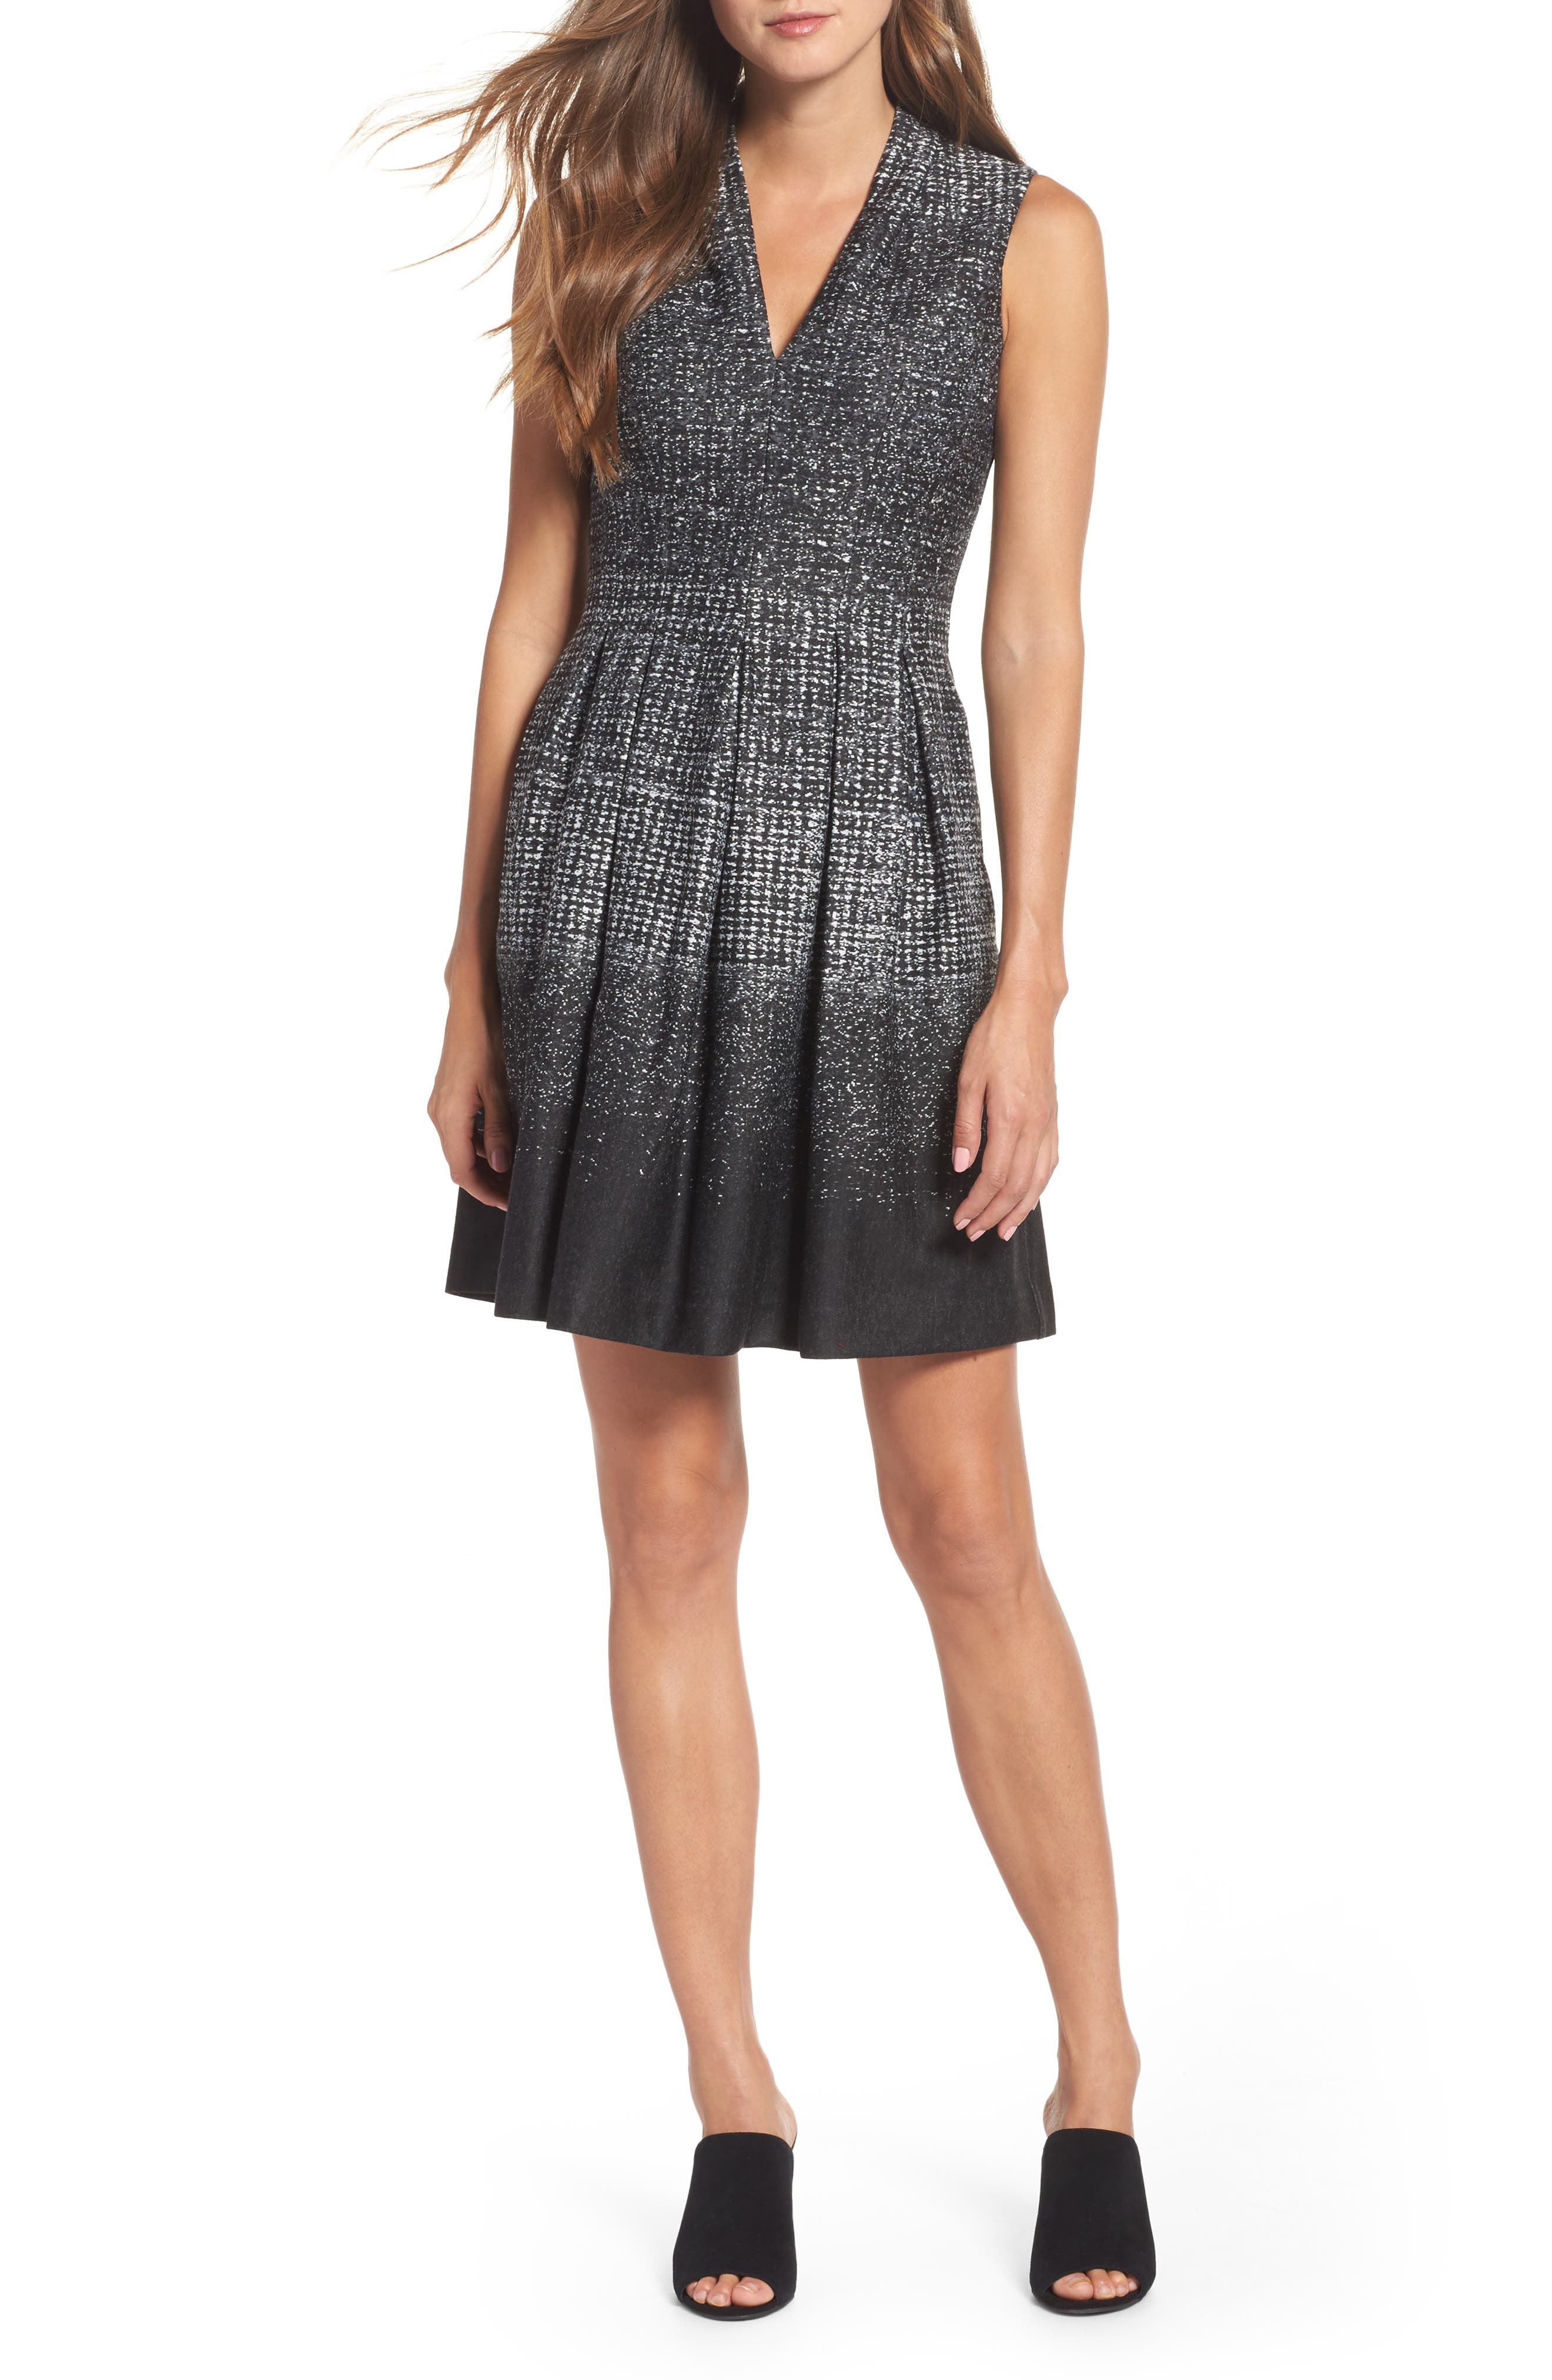 Alternate Image 1 Selected - Vince Camuto Sleeveless Fit & Flare Dress (Regular & Petite)